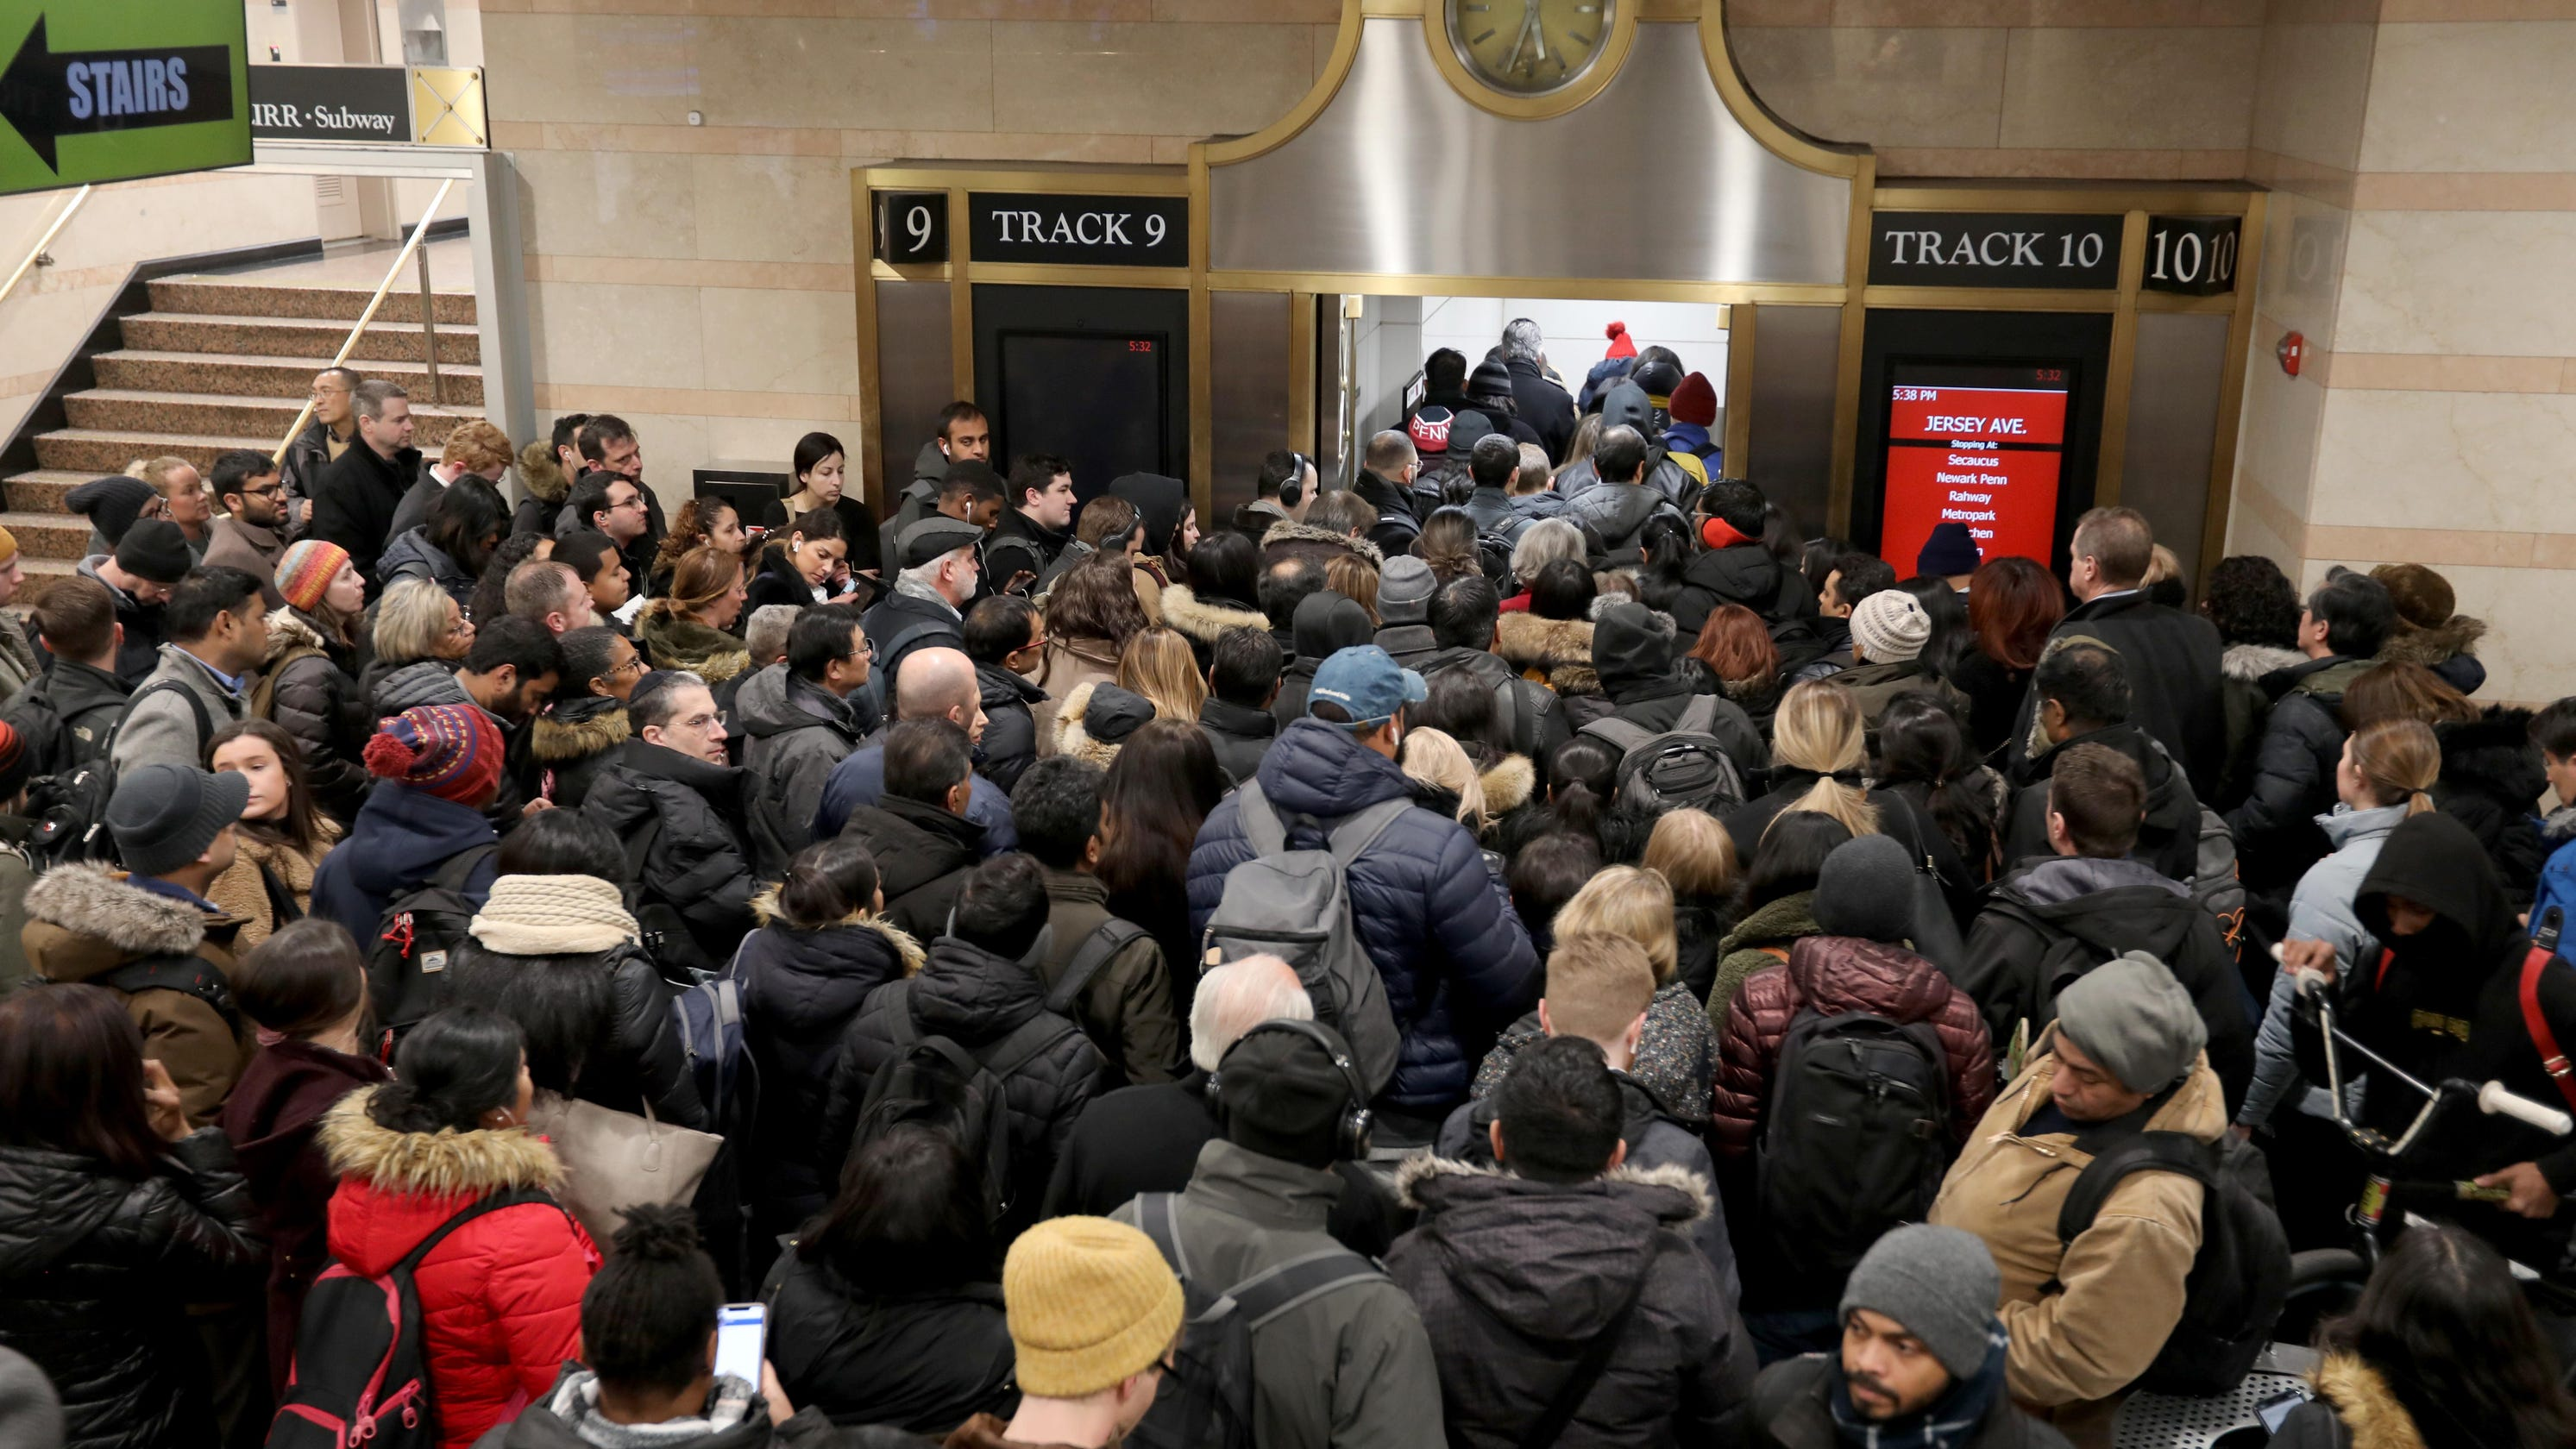 New York Penn Station was plagued with problems before COVID-19. Is the pandemic the time to fix them?